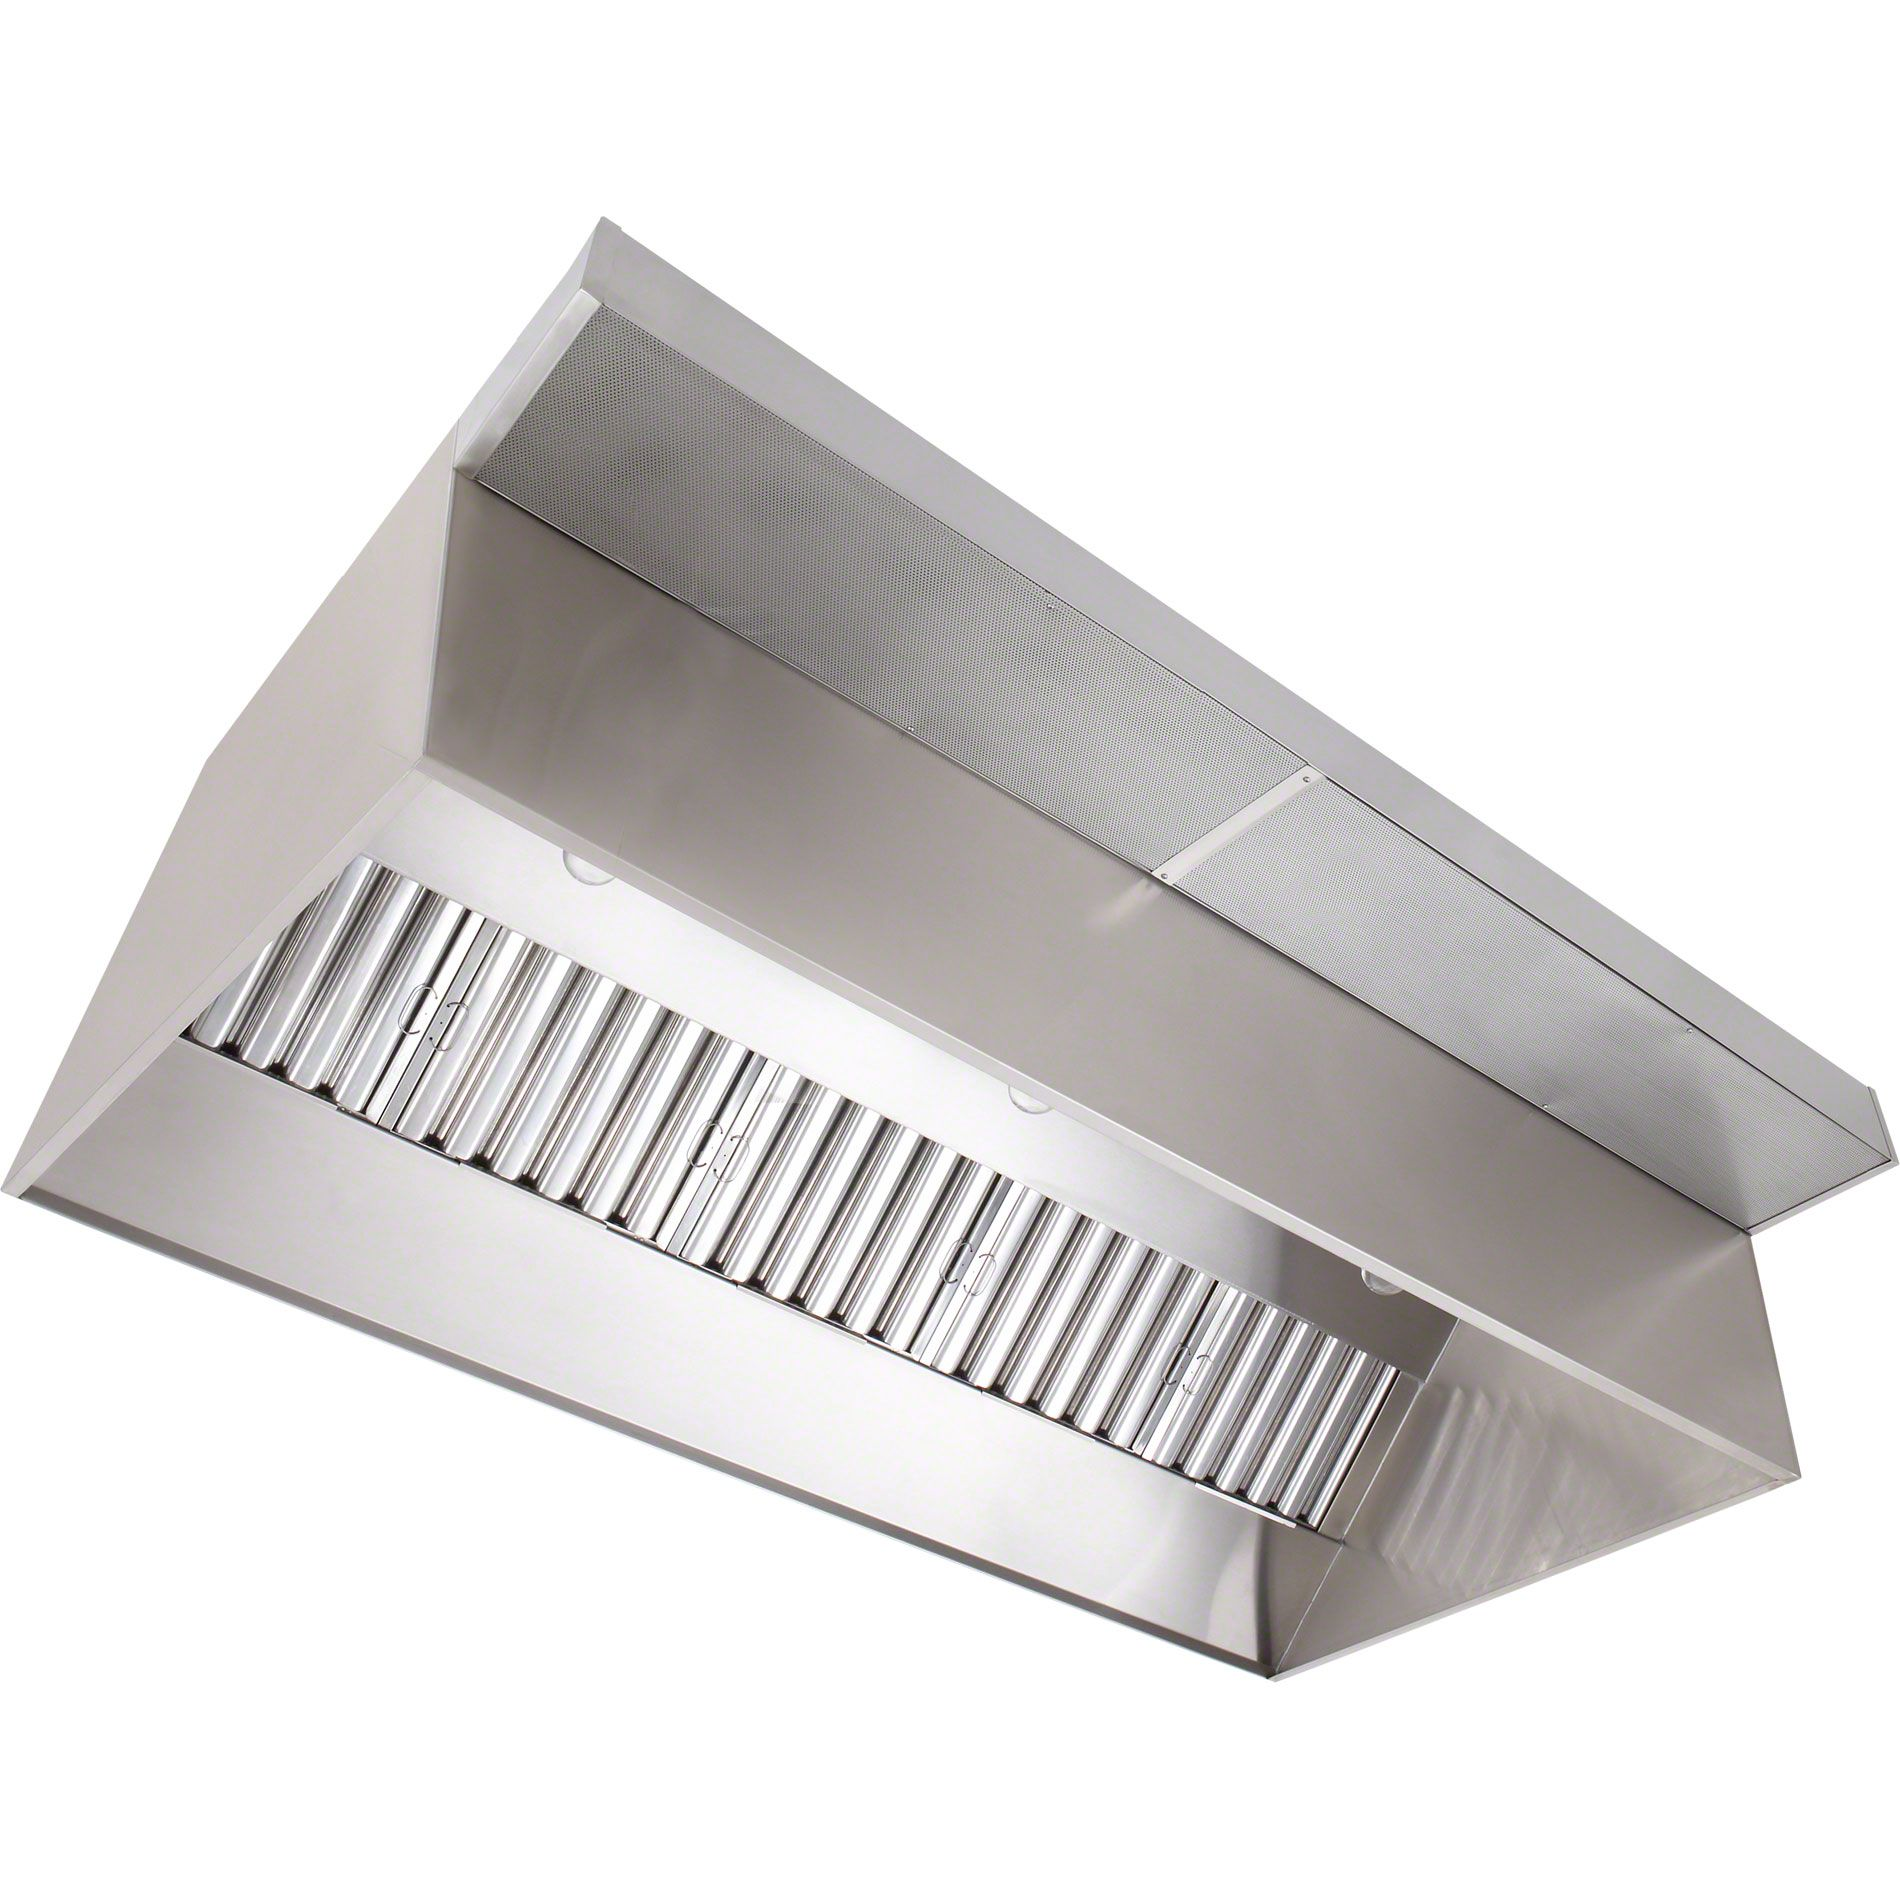 Captive Aire - Wall Canopy Exhaust-Only Vent Hood Exhaust Fan u0026 Make-Up Air Unit  sc 1 st  Pinterest & Captive Aire - CAS-12-WCHFHMUS 12u0027 Wall Canopy Exhaust-Only Vent ...